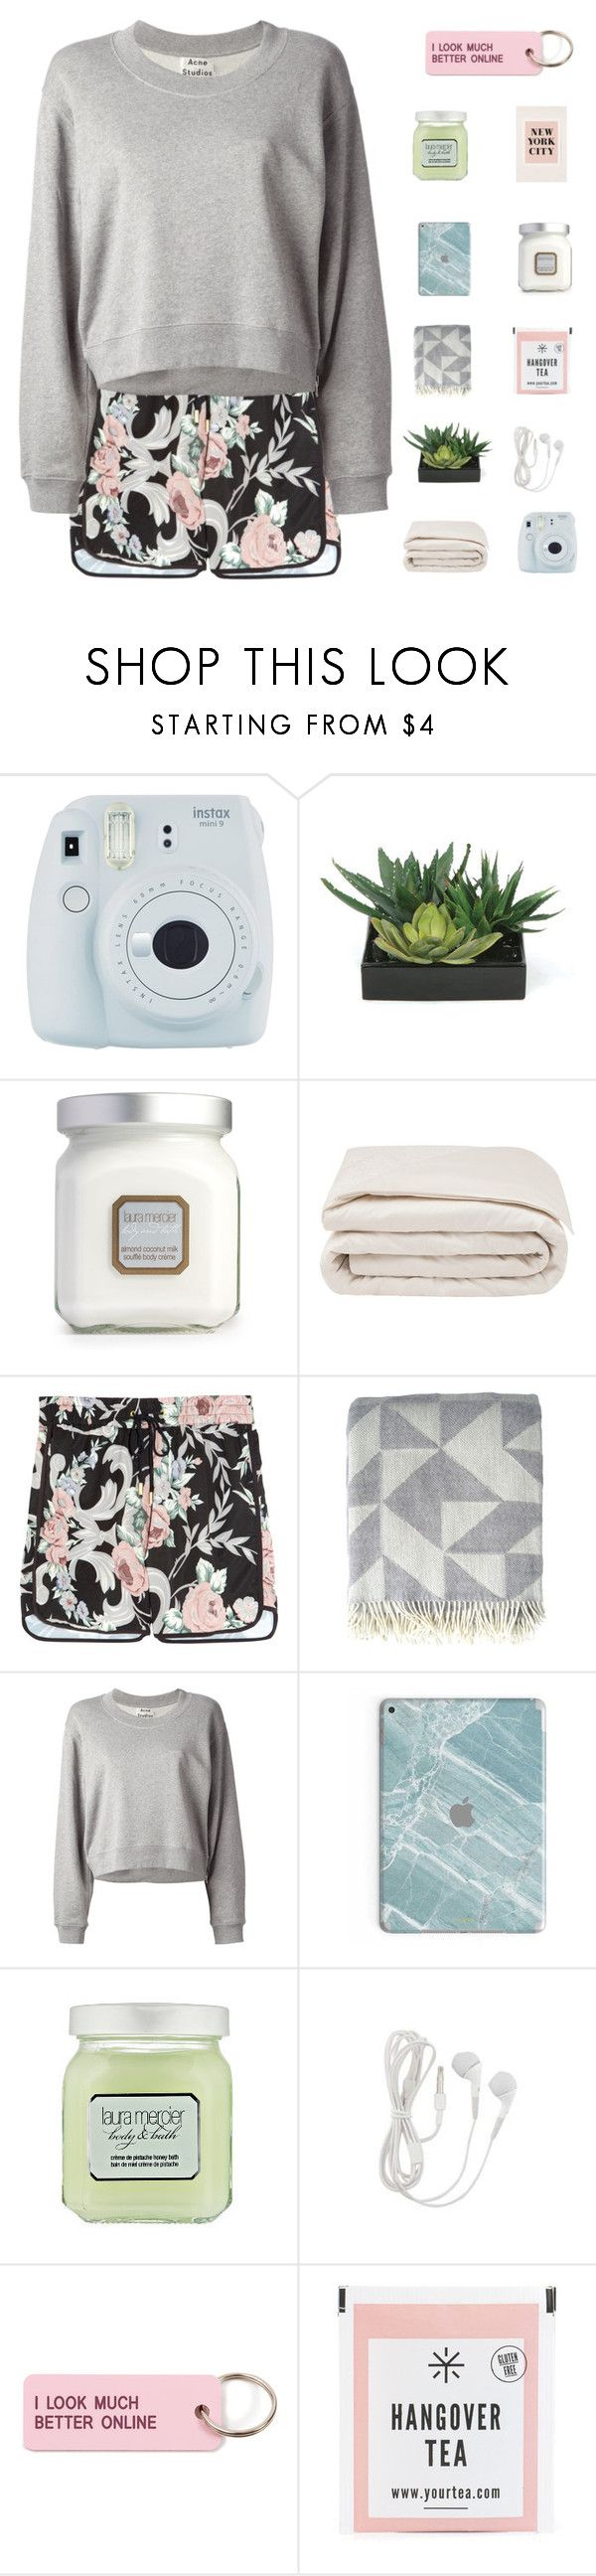 """so don't be afraid, because there's nothing to fear ⚘"" by itssloanexoxo ❤ liked on Polyvore featuring Fujifilm, Lux-Art Silks, Laura Mercier, Frette, Zimmermann, Ratzer, Acne Studios, Various Projects and Urban Outfitters"